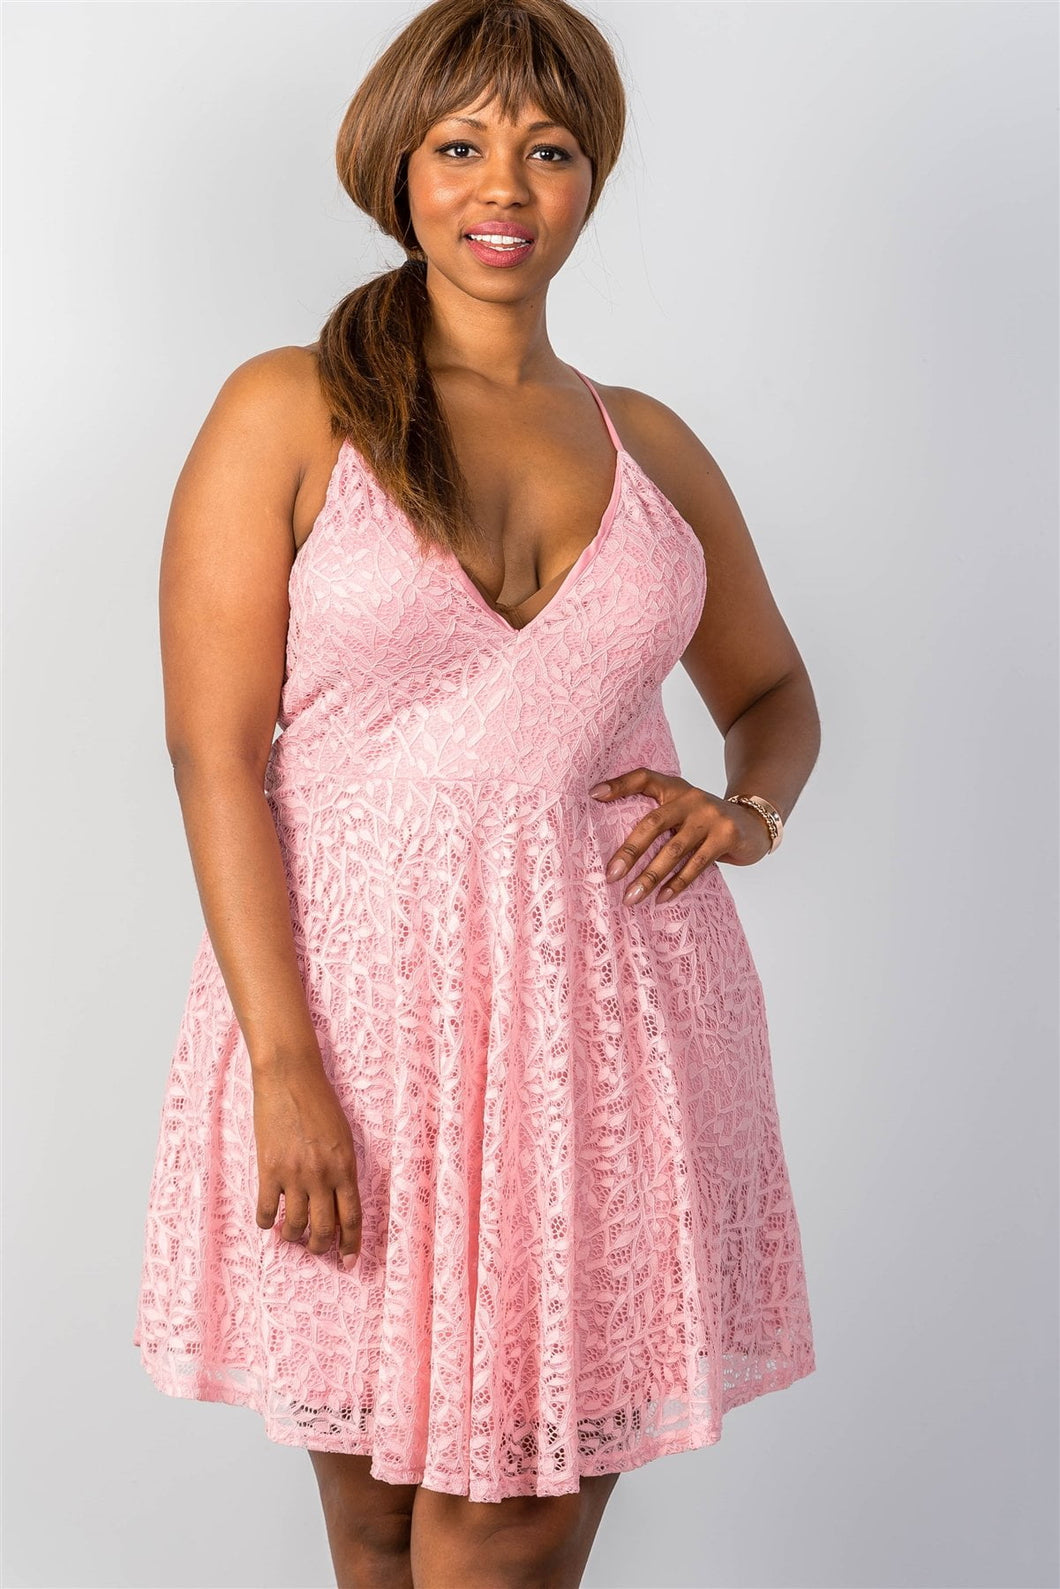 Ladies fashion plus size pink floral lace cami dress with lace-up back